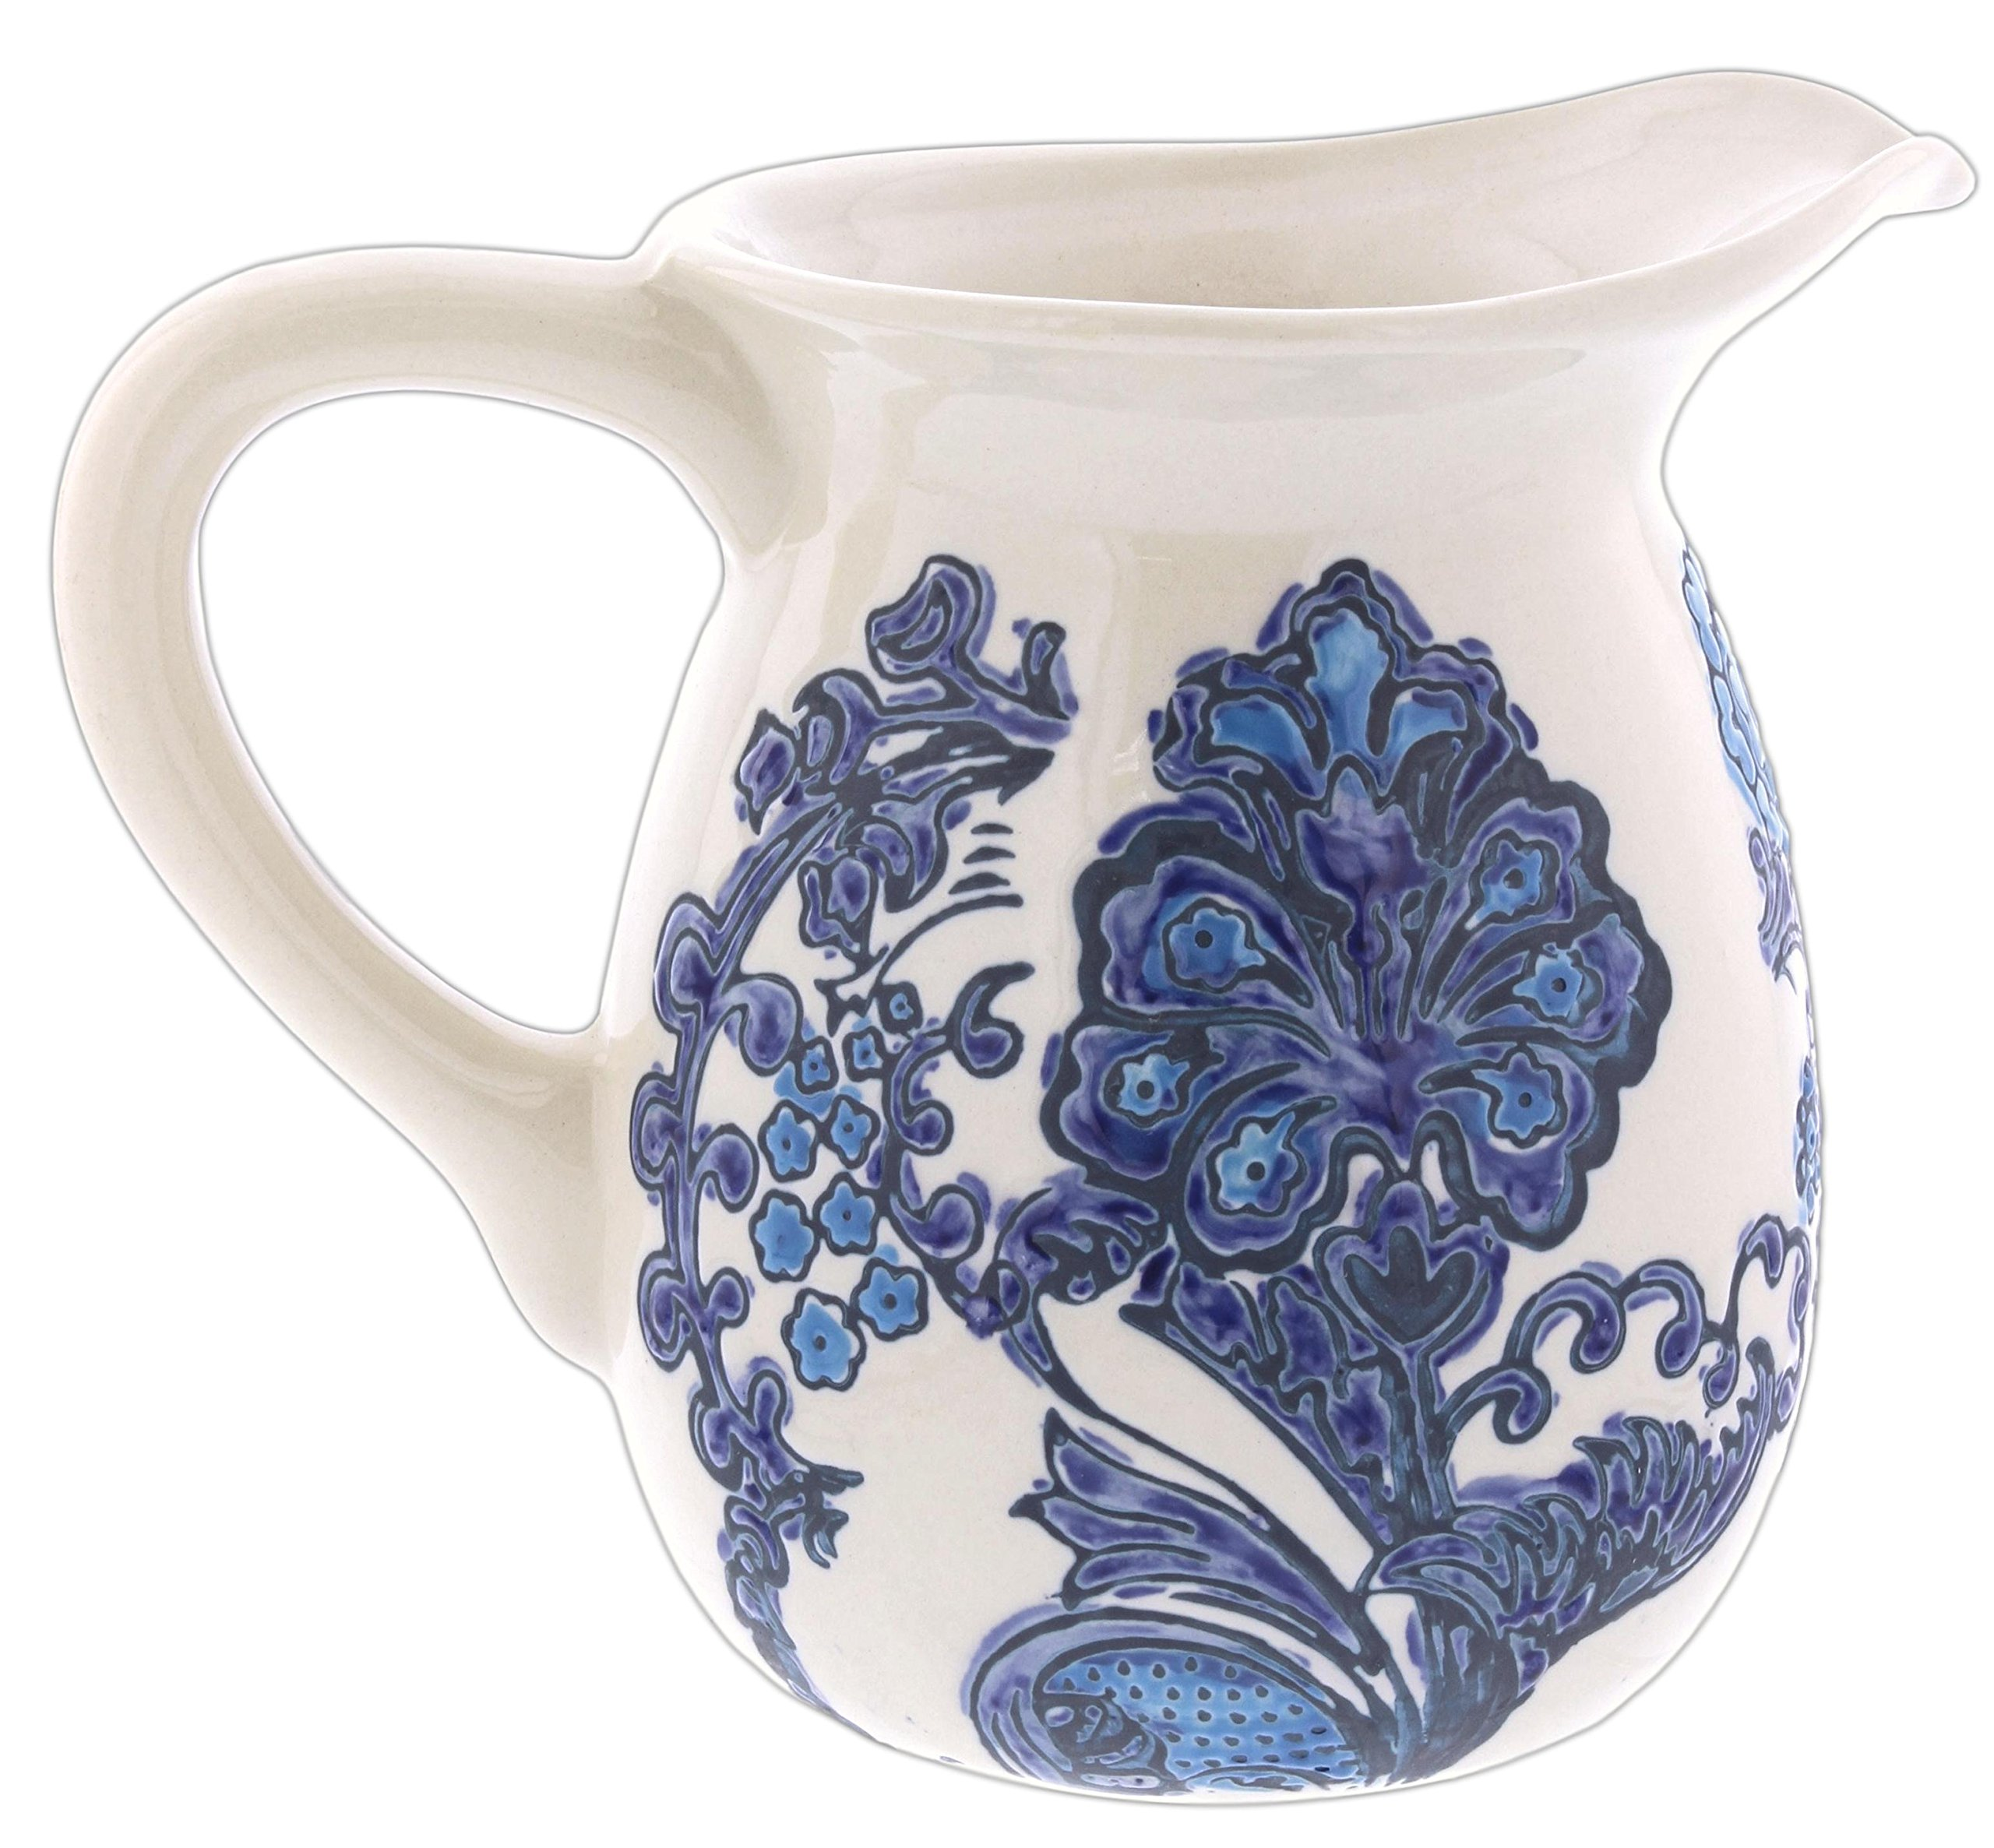 Lucky Winner 7'' Blue & White Delft Style Floral Ceramic Pitcher